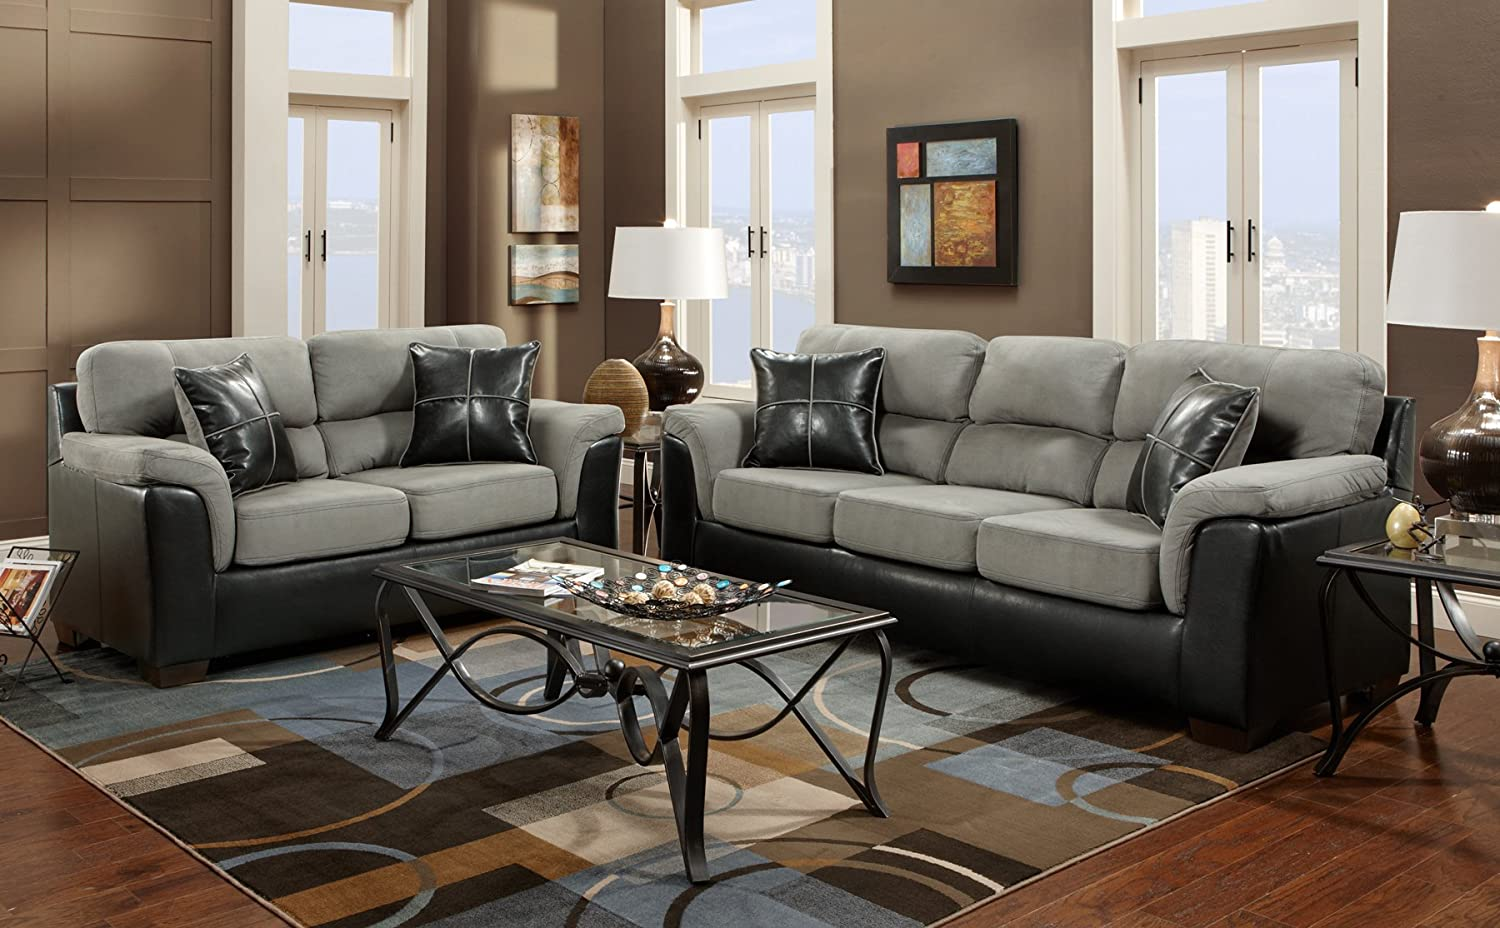 Living room furniture sets | Sofa and loveseat sets | Microfiber ...